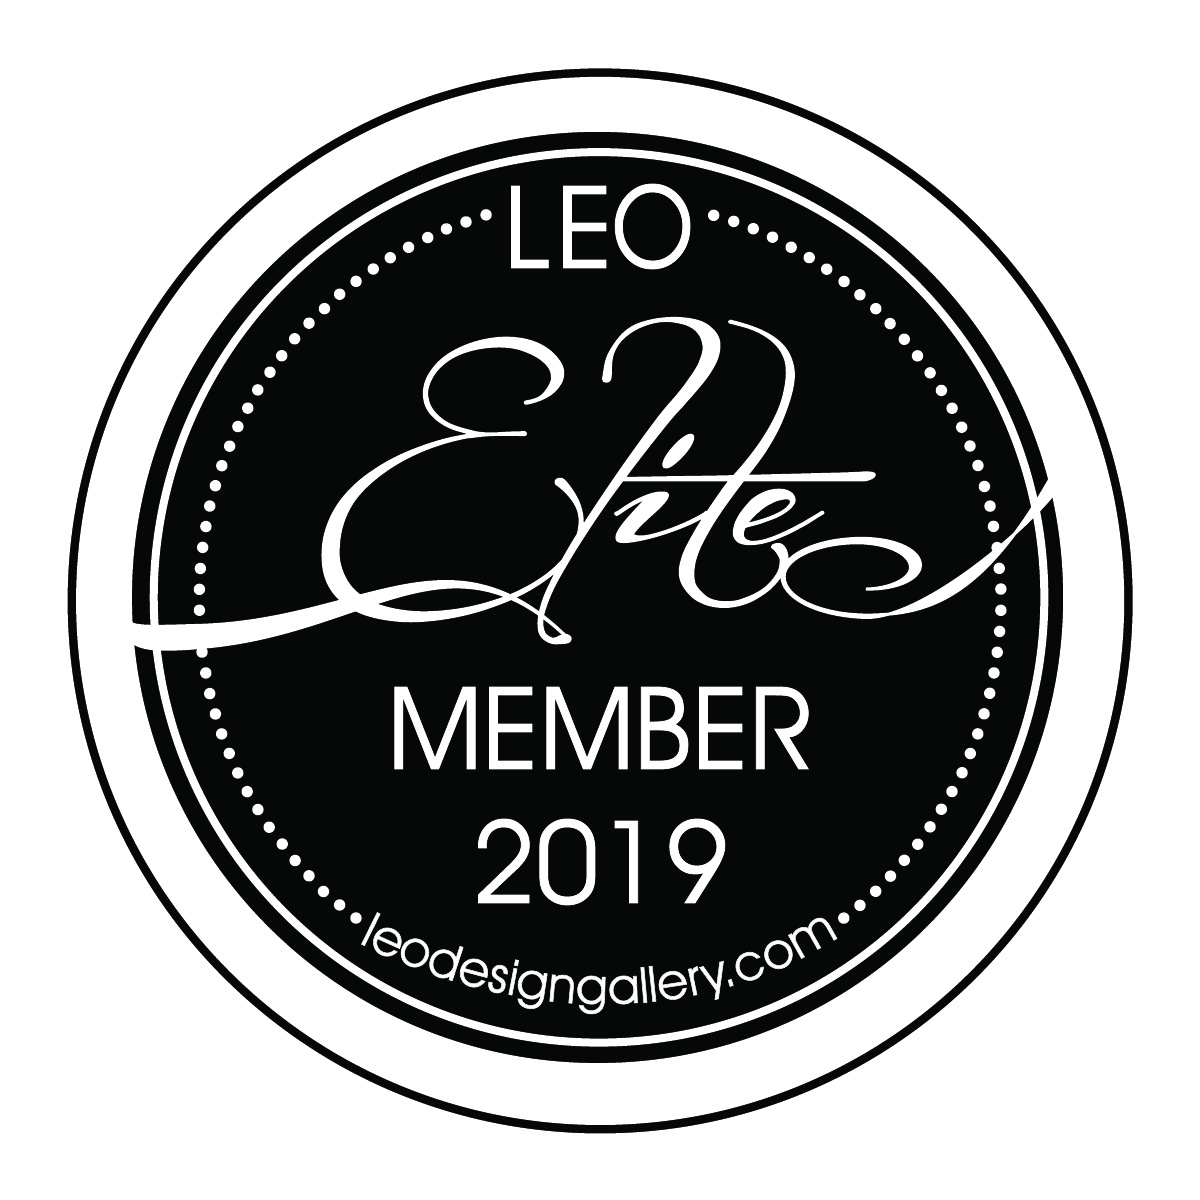 Member of the LEO Elite